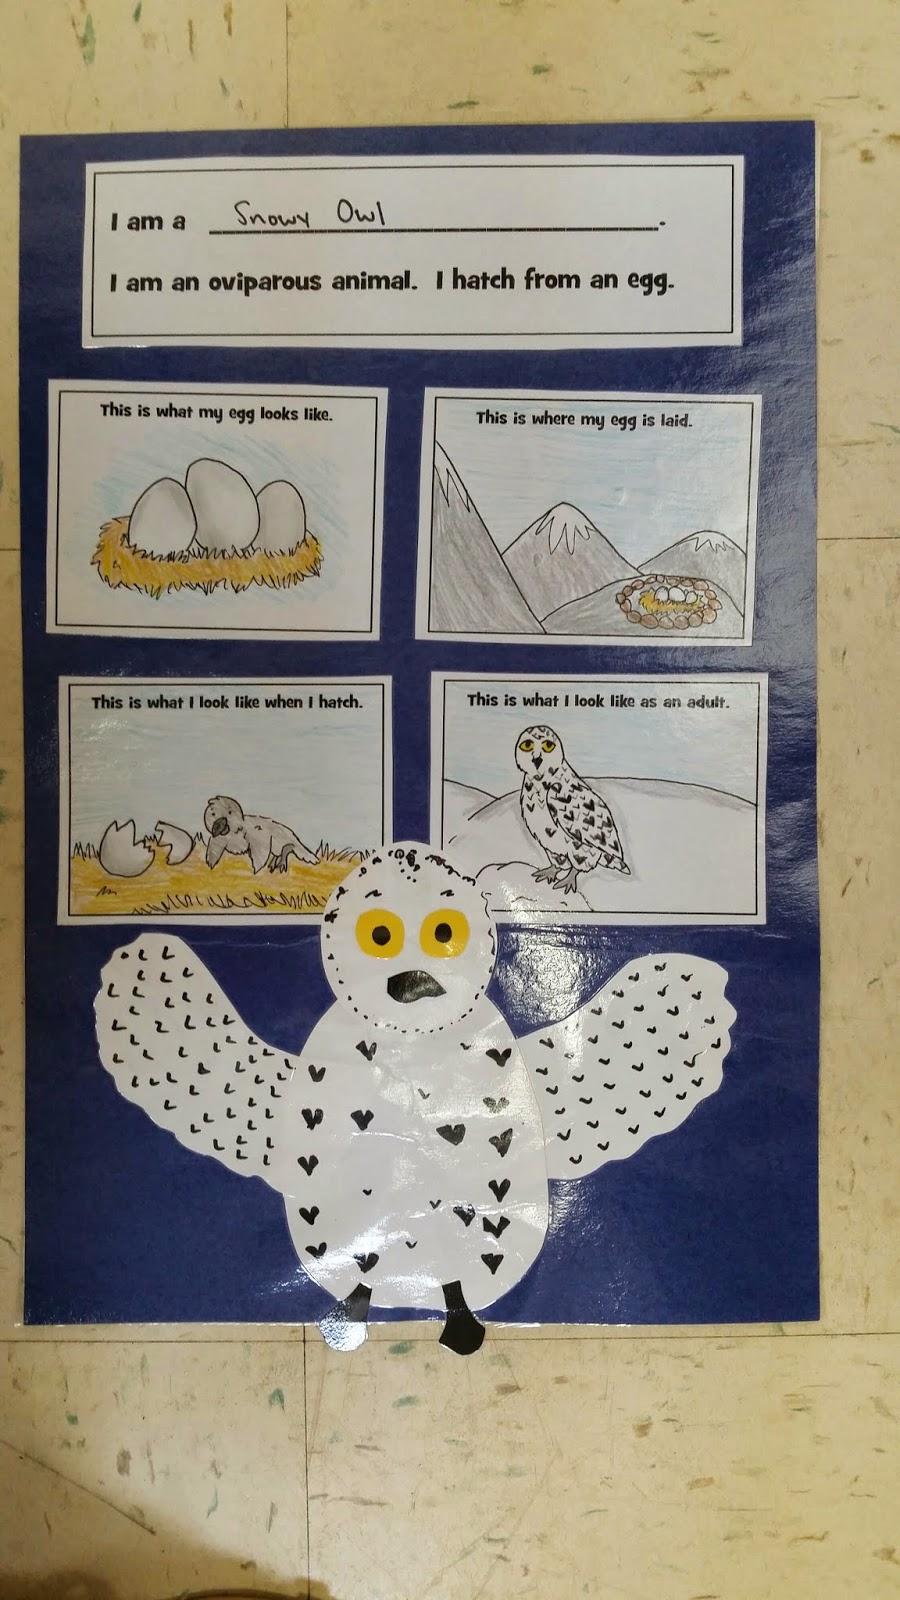 Image of: Activities If You Teach About Oviparous Animals In Your Class And Want To Know More About This Project You Check It Out By Clicking On The Image Below Mrs Ehles Kindergarten Connections Mrs Ehles Kindergarten Connections Oviparous Animals An Egg